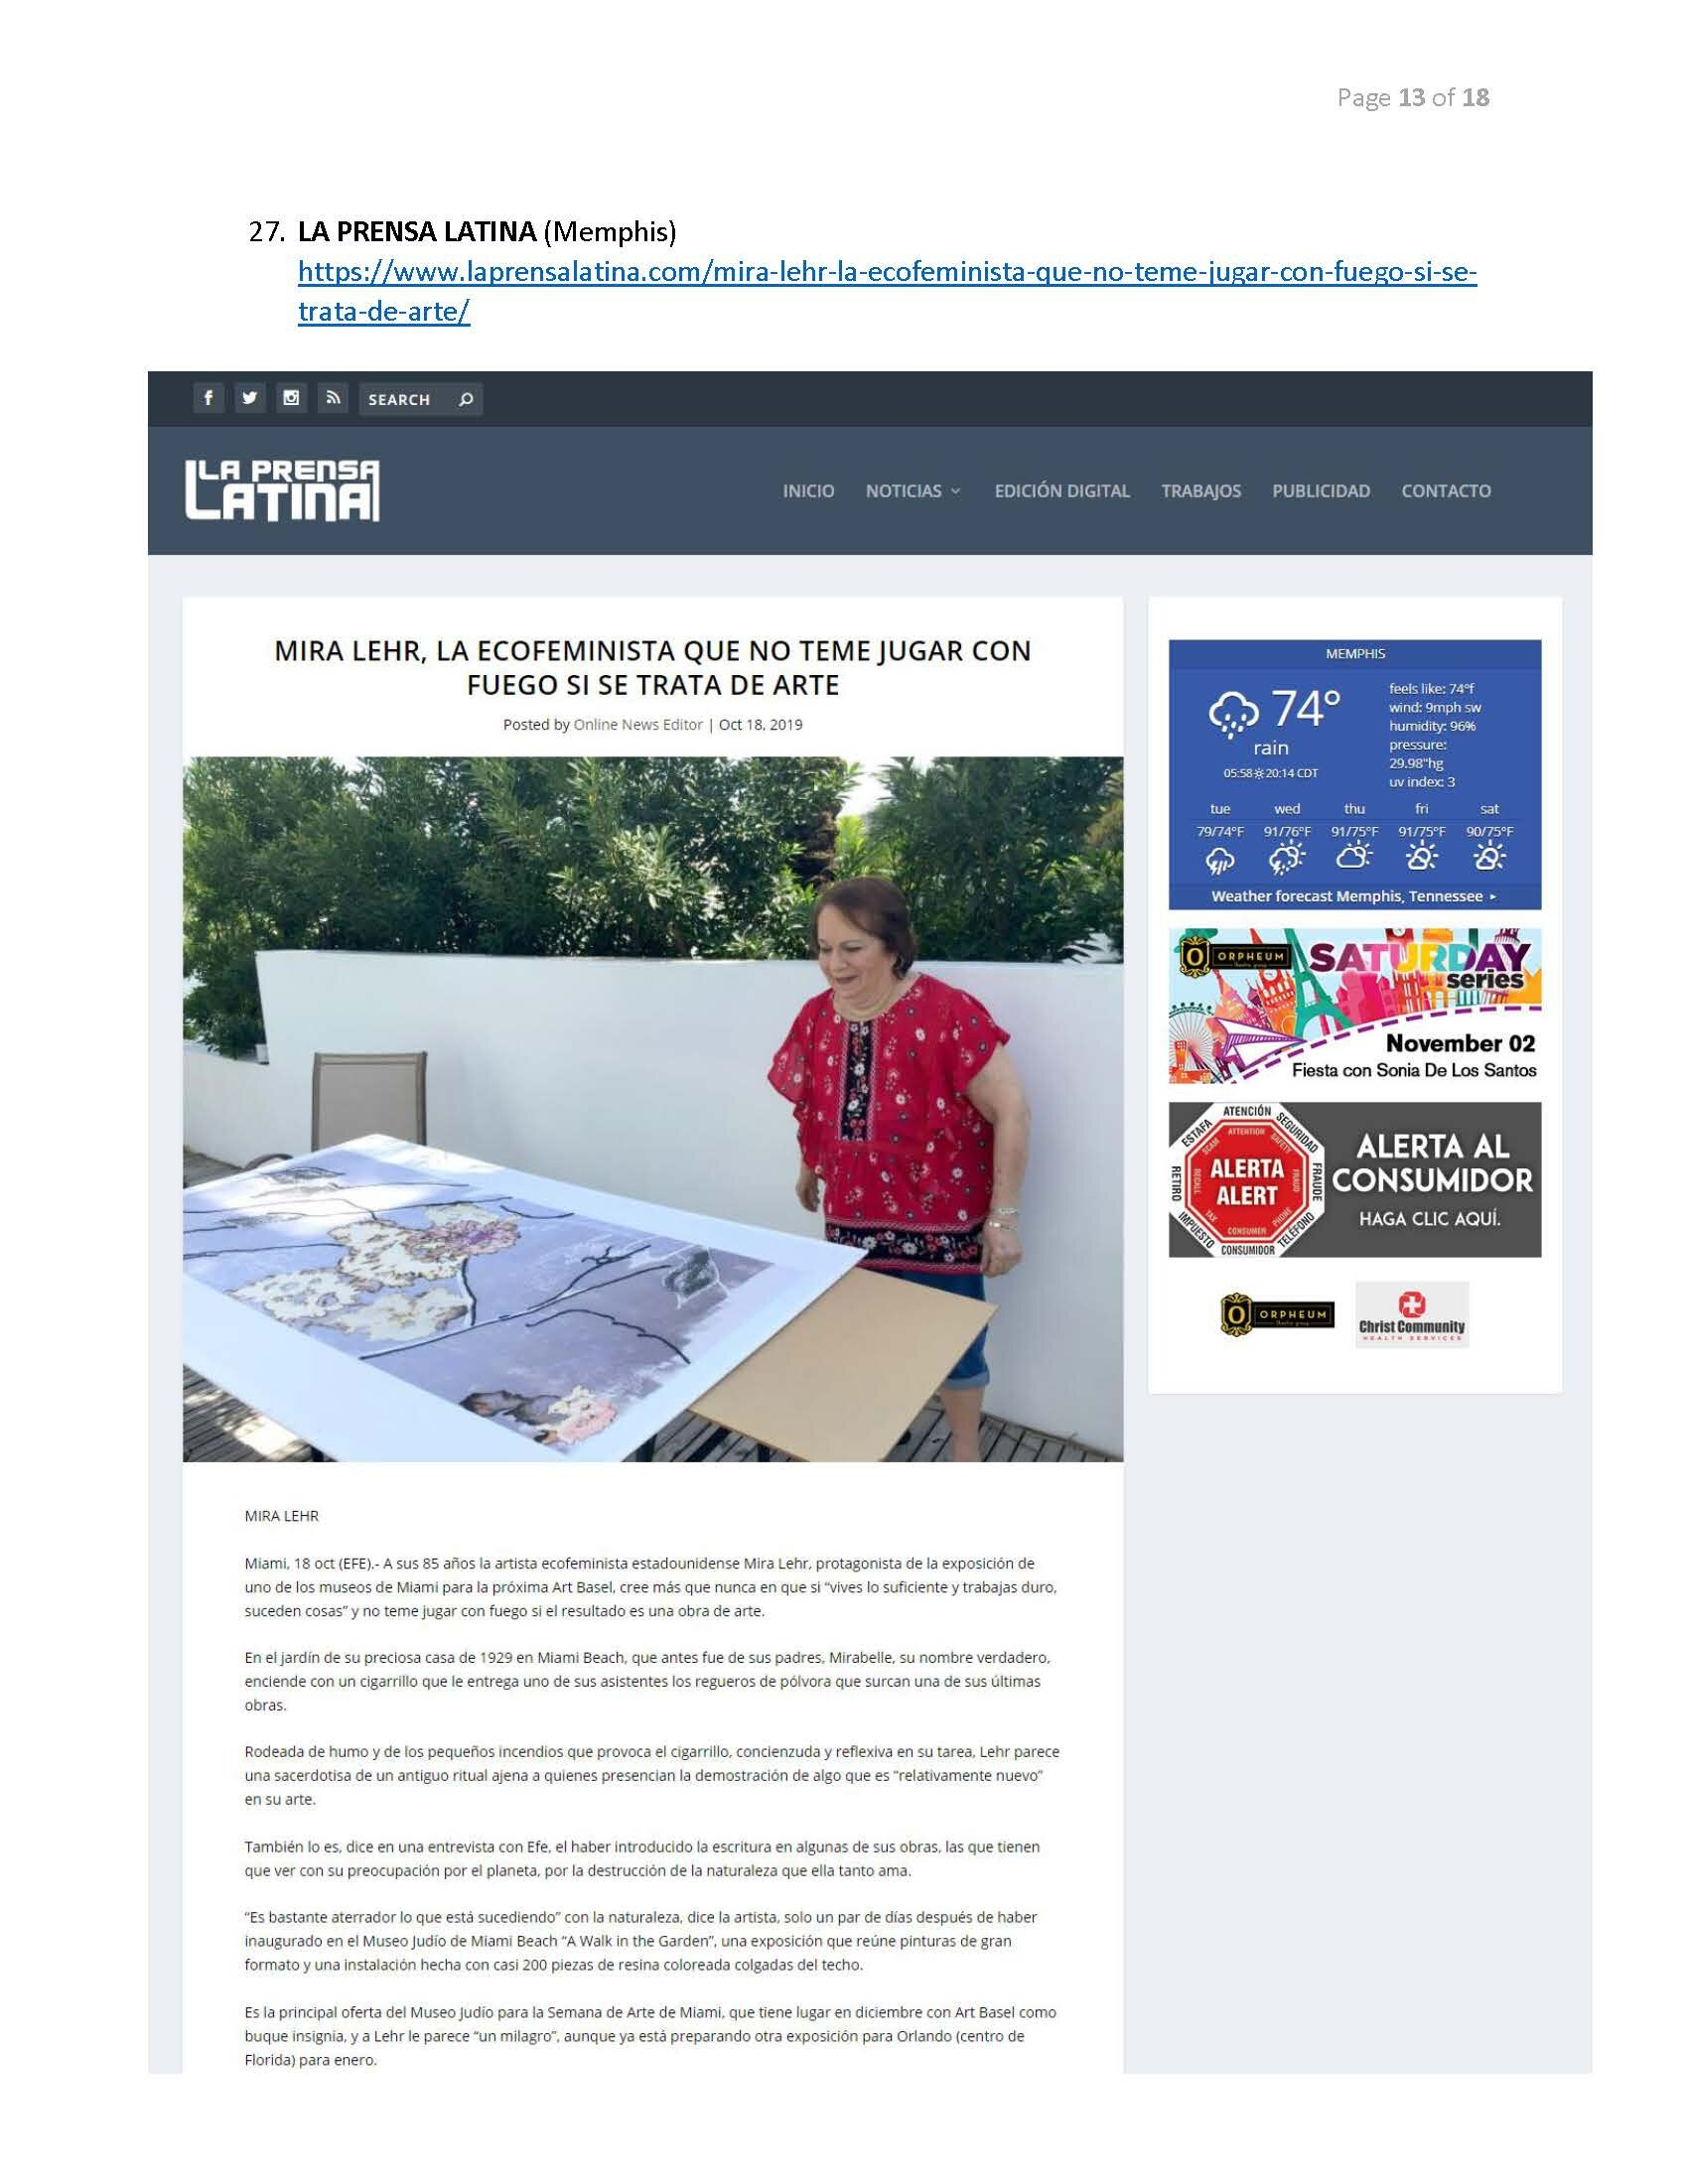 NewsTravelsFast E.F.E. Newswire Results - MIRA LERH EXHIBITION AT JOMF - October 2019_Page_13.jpg